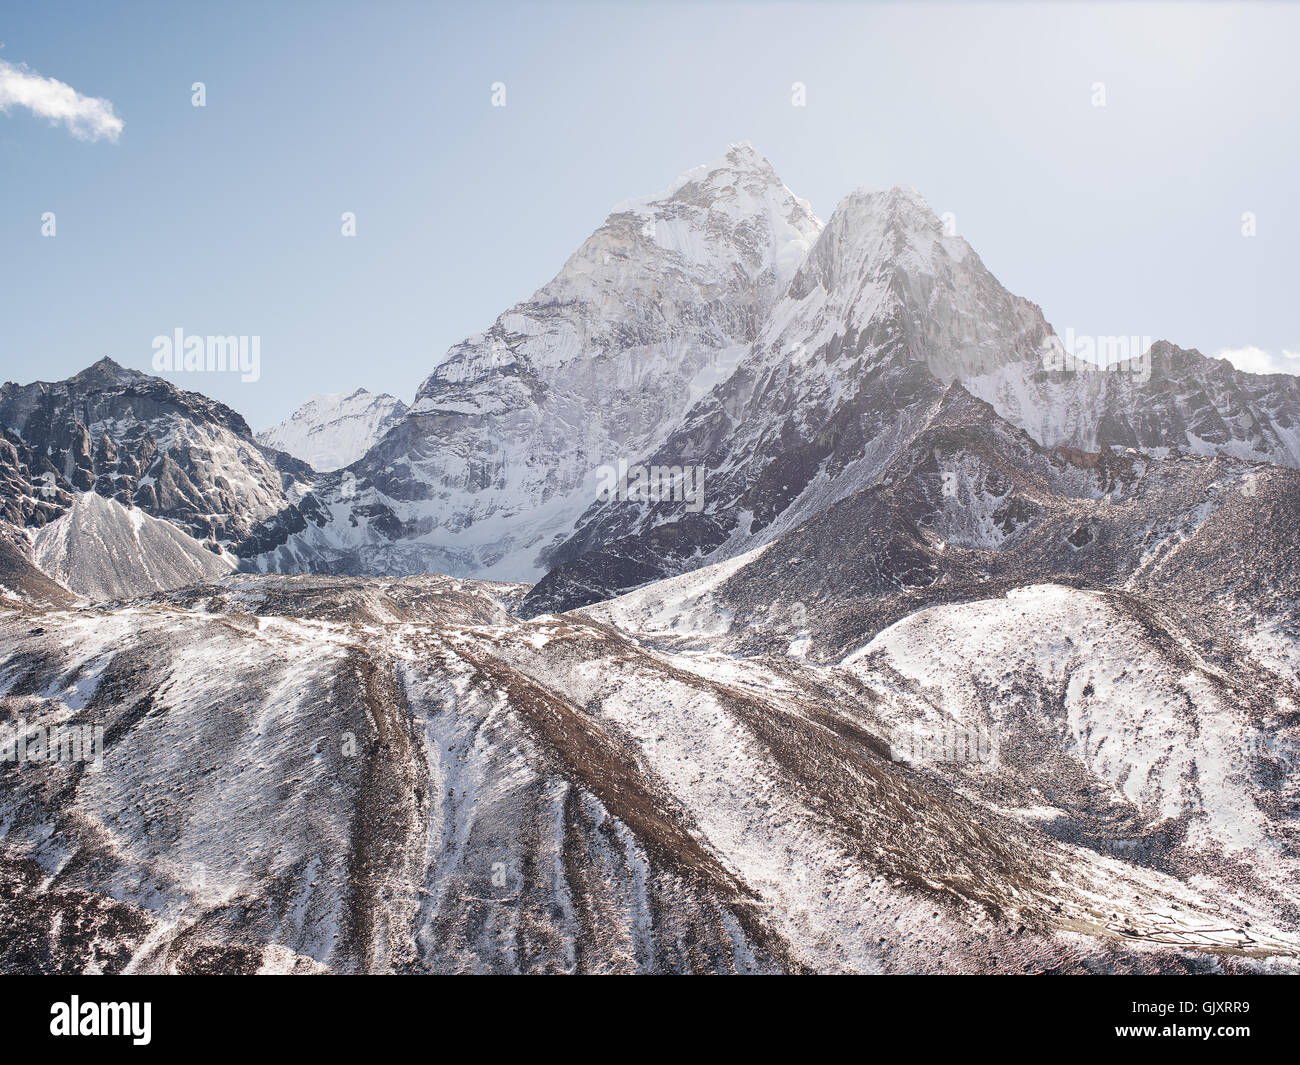 Snowy peak in Nepal's Himalayas in Everest Base Camp - Stock Image